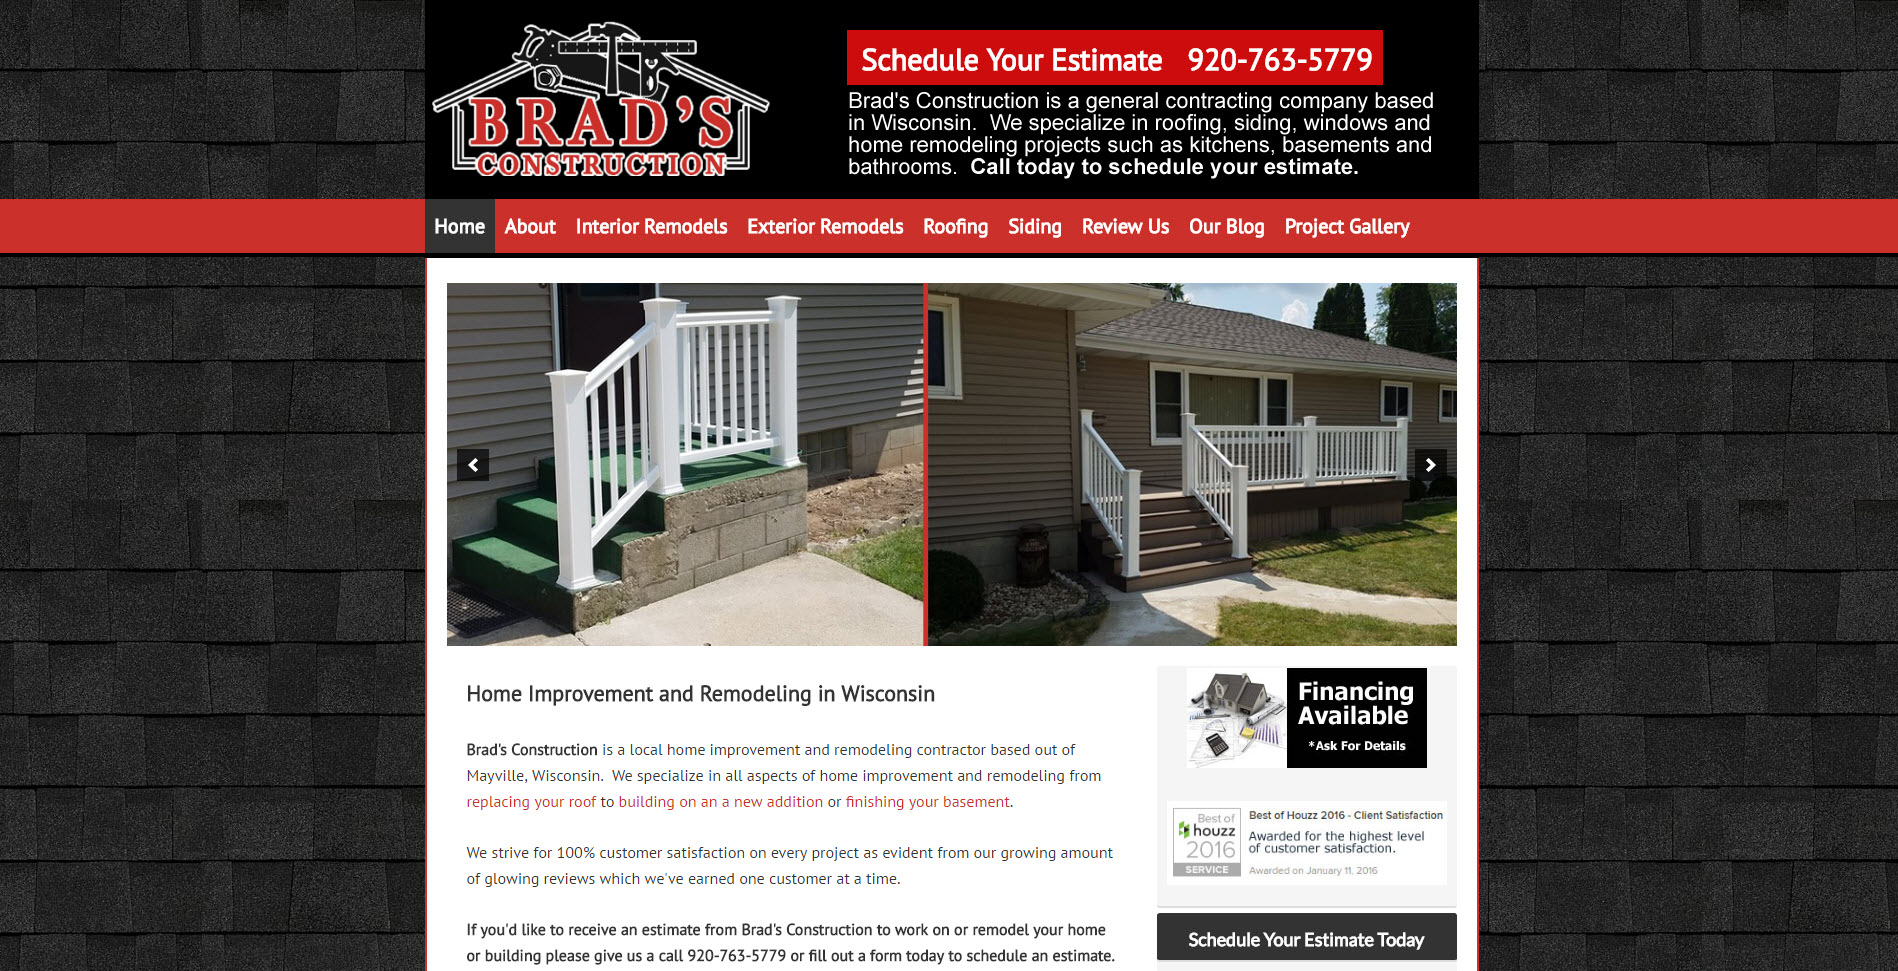 Construction And Remodeling Companies website portfolio